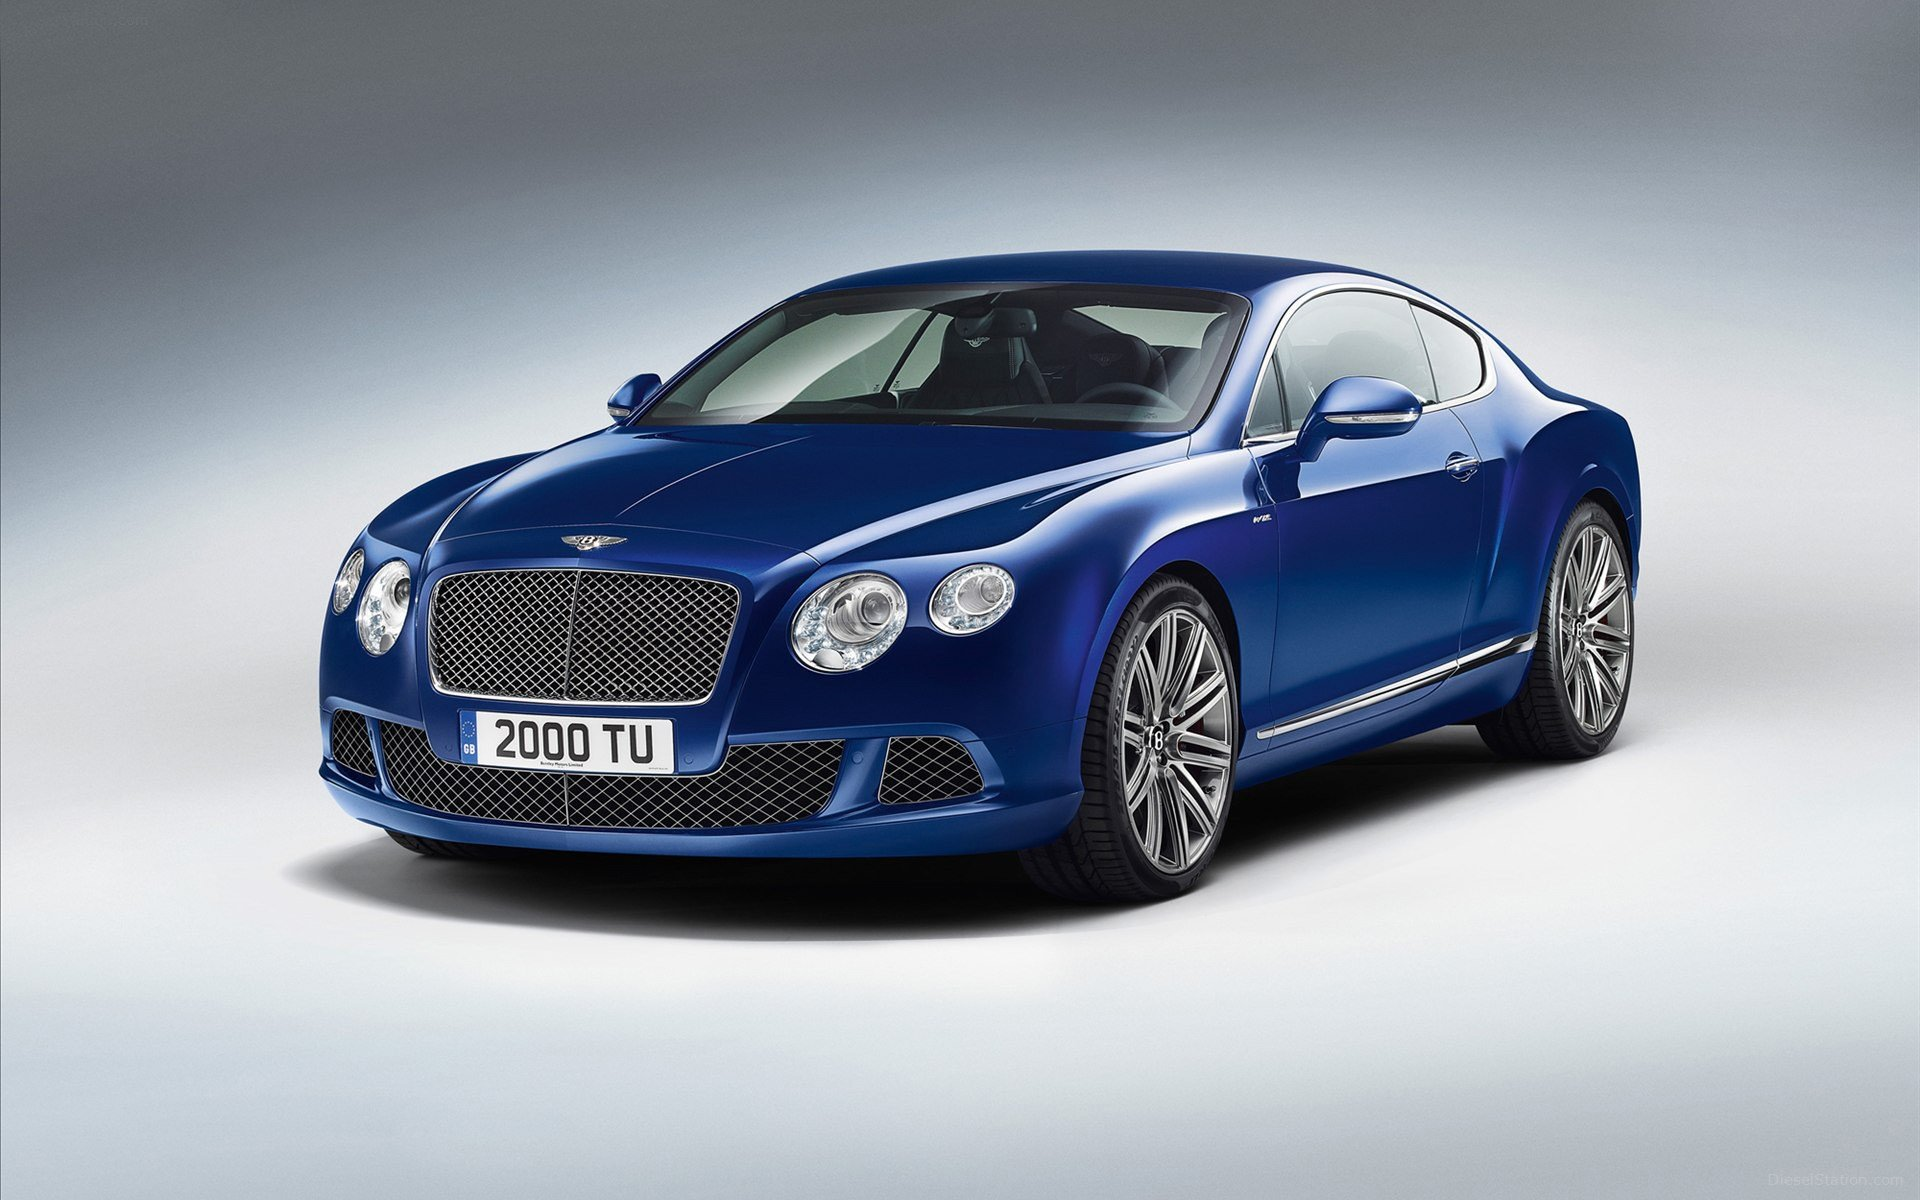 Latest 2013 Bentley Continental Gt Speed Wallpaper Hd Car Free Download